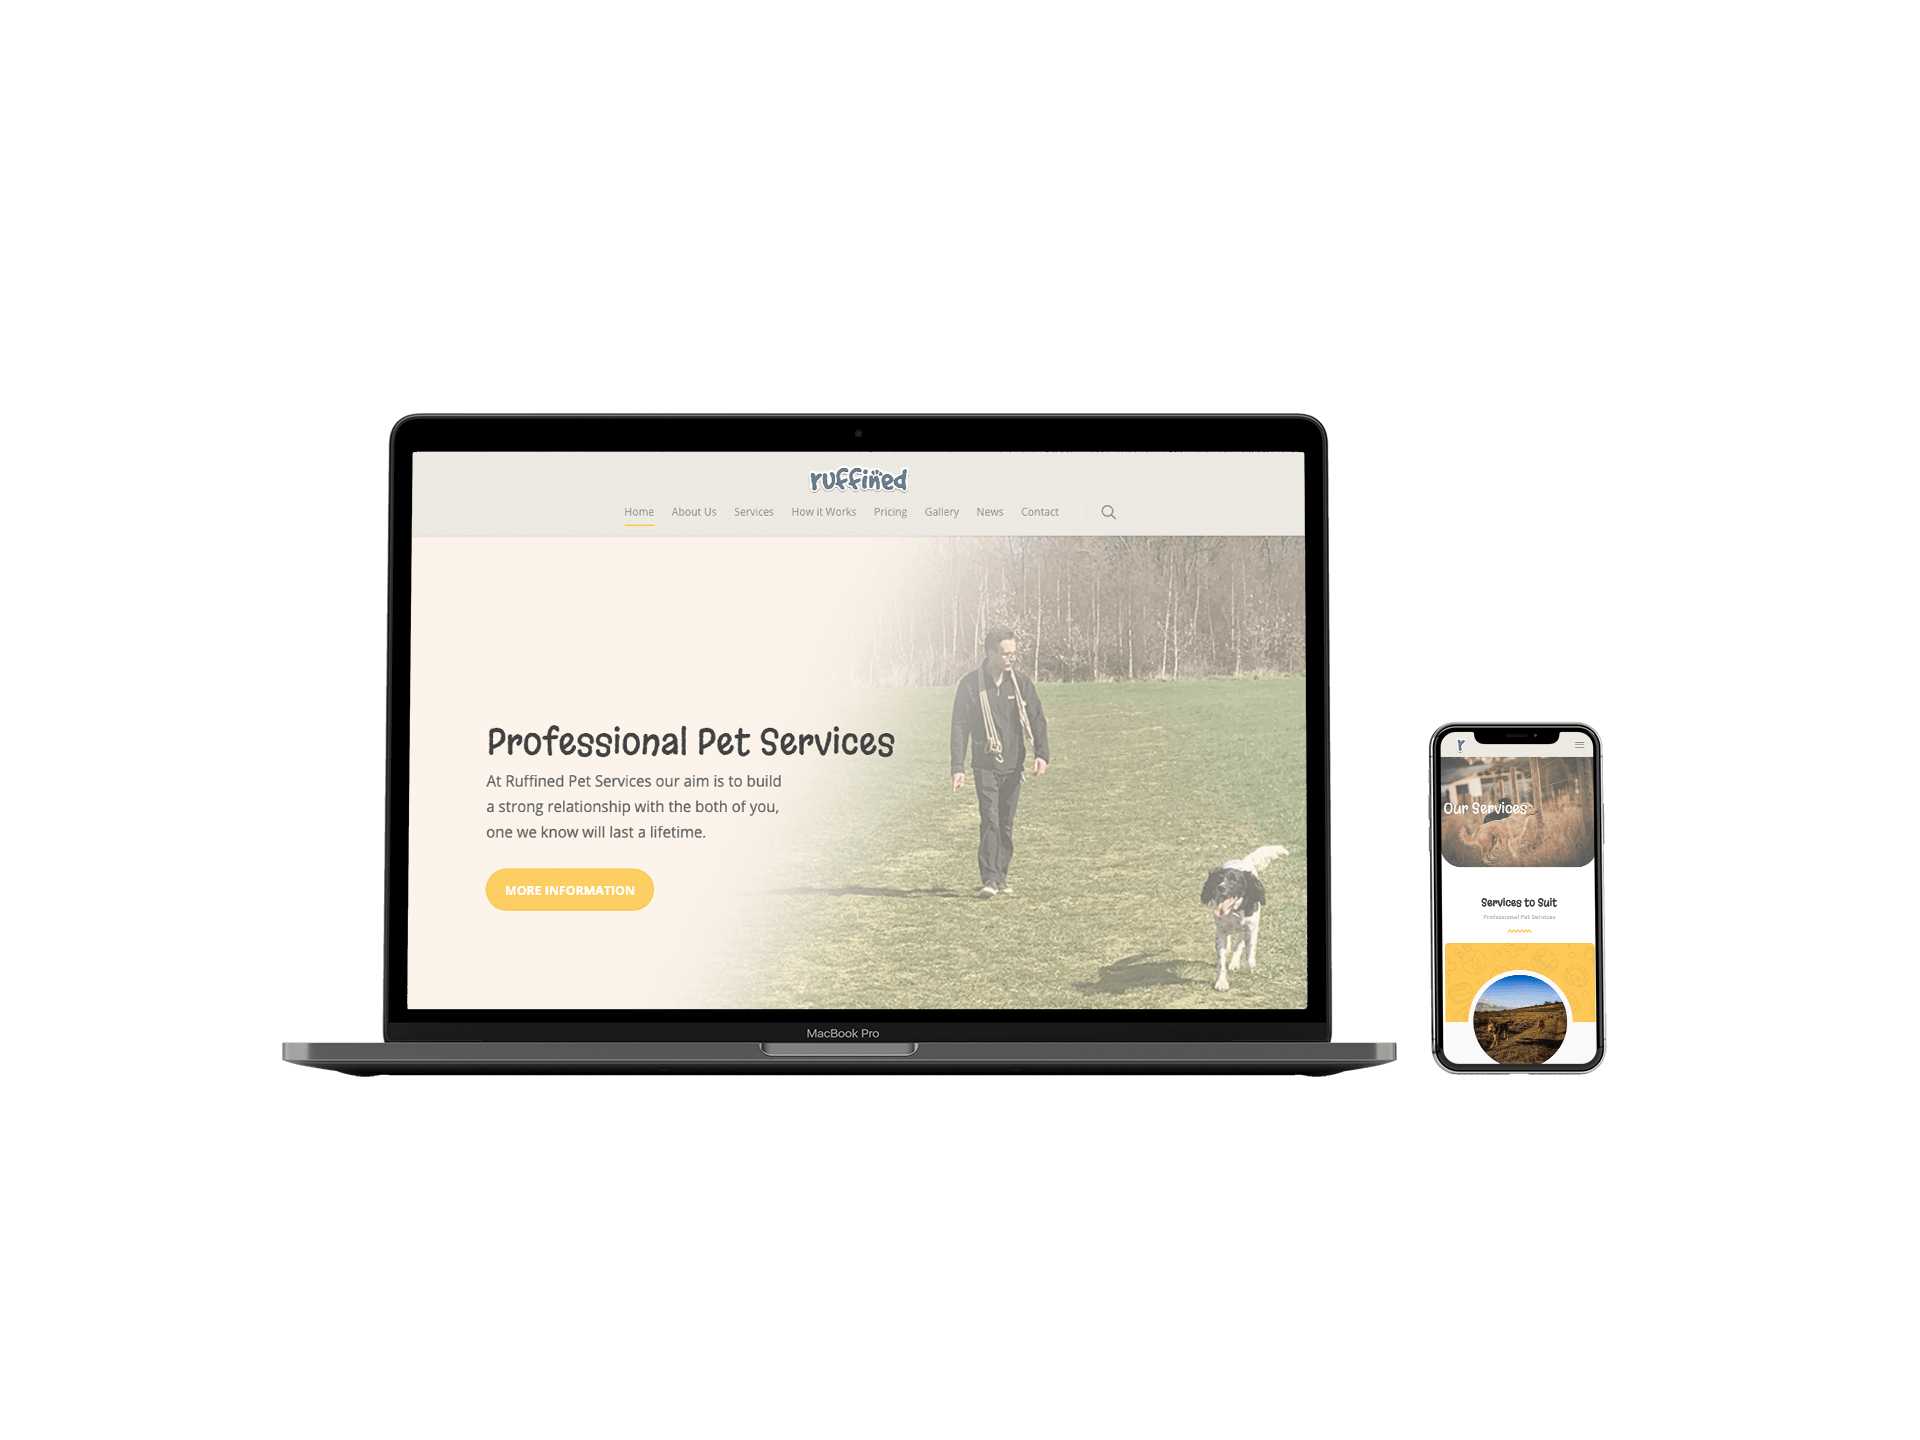 Ruffined Pet Services Featured Image